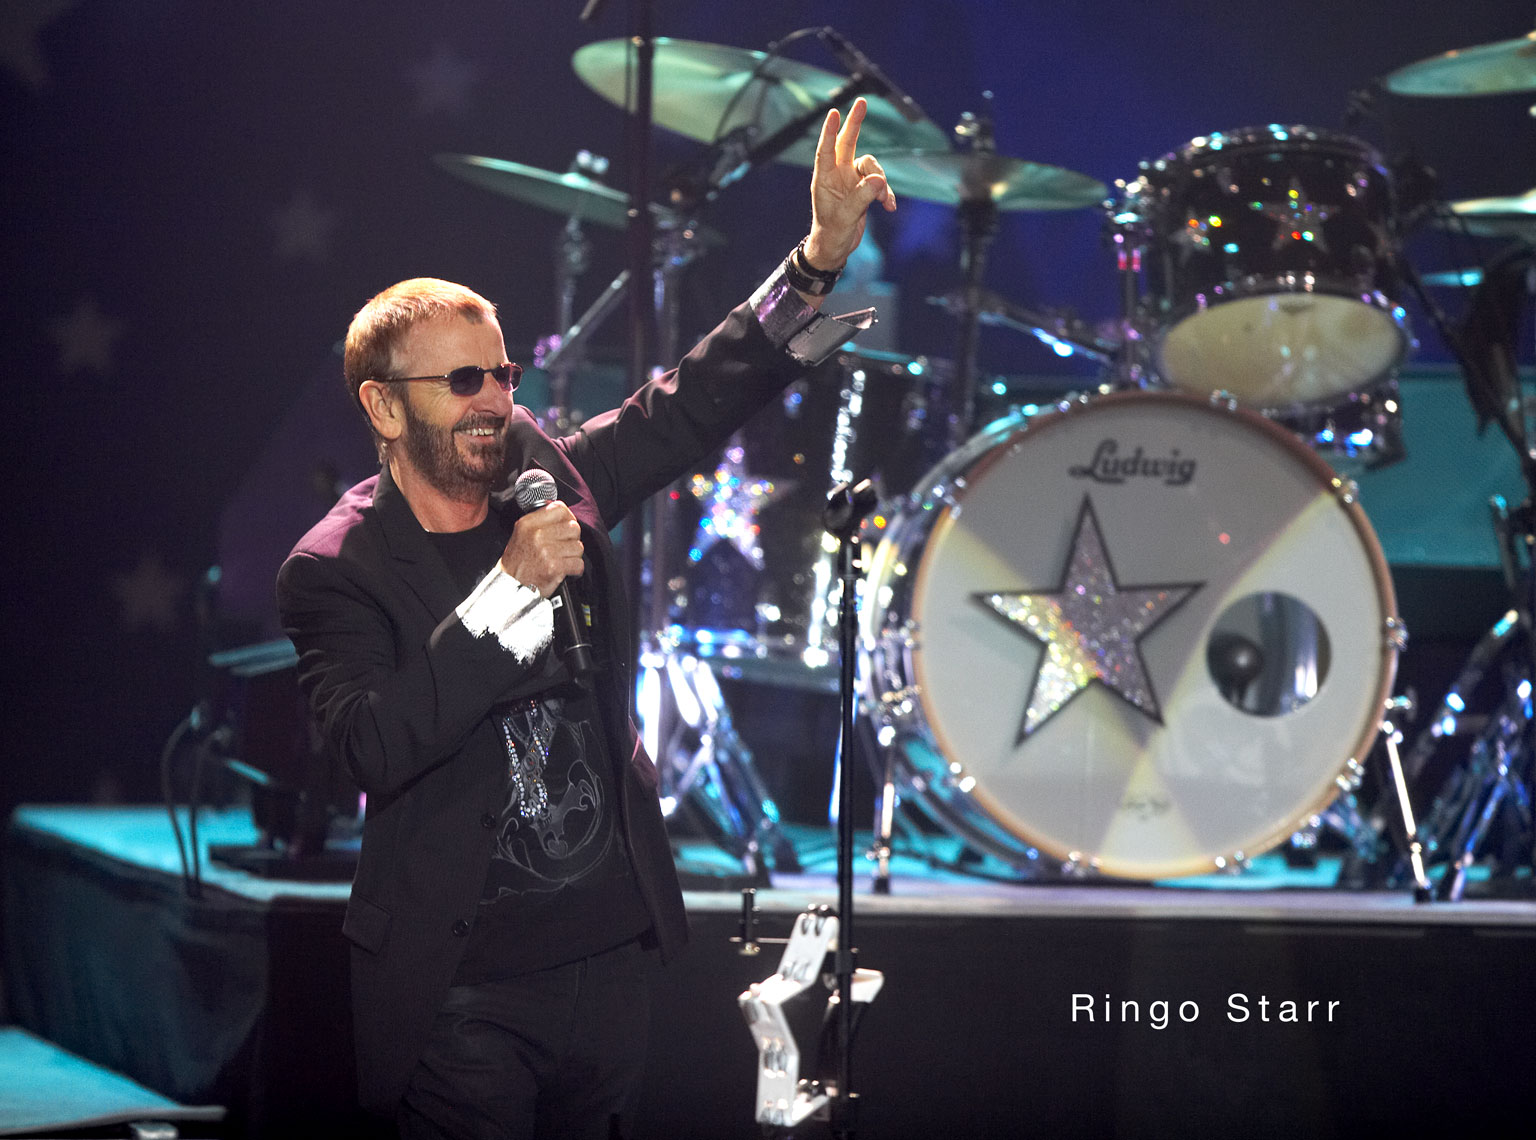 Ringo Star/Mystic Lake Casino/lifestyle photo